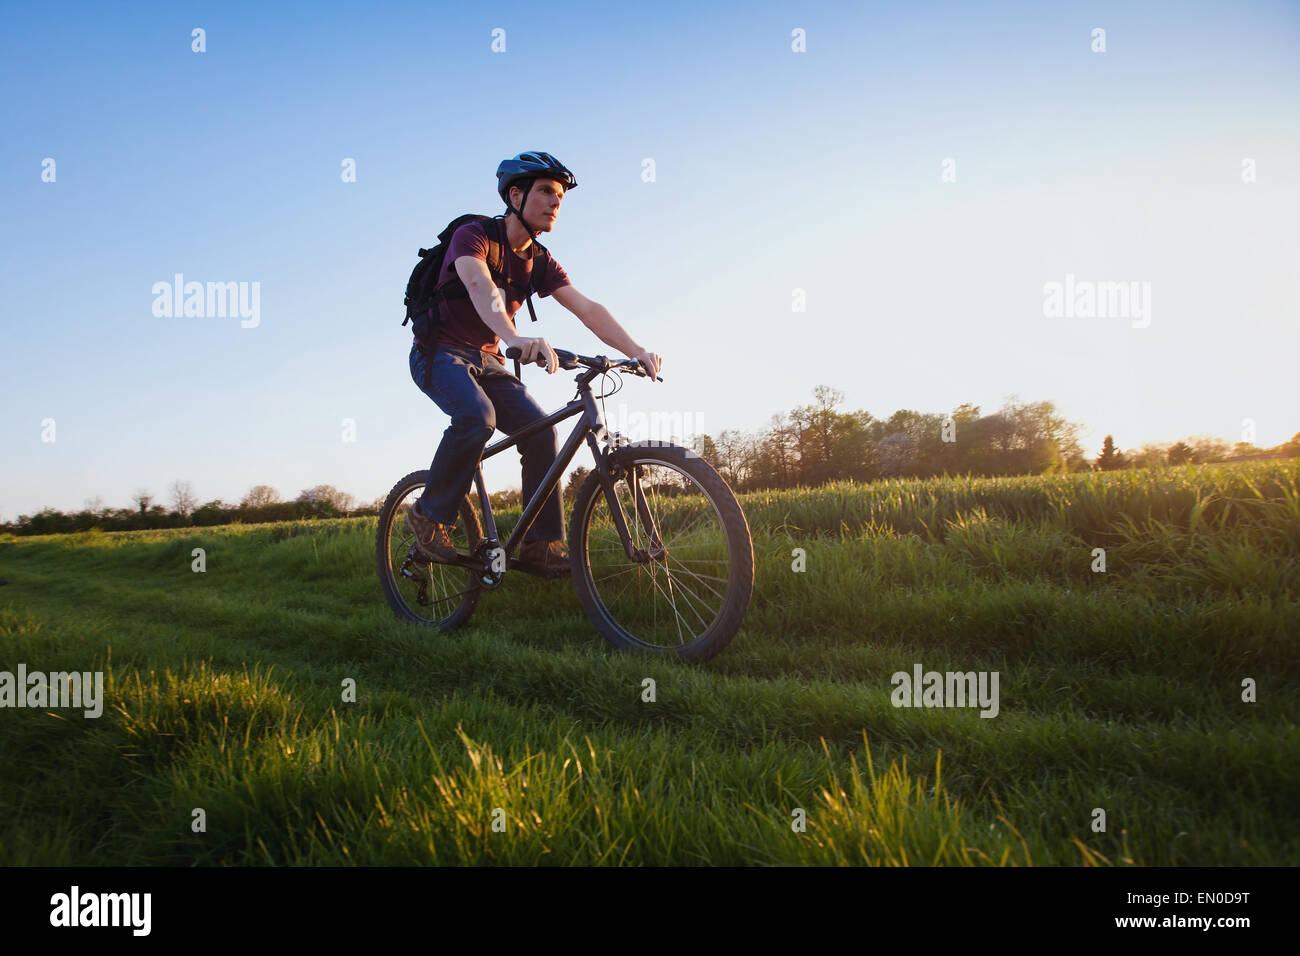 outdoor sport, young man riding bicycle in the nature - Stock Image